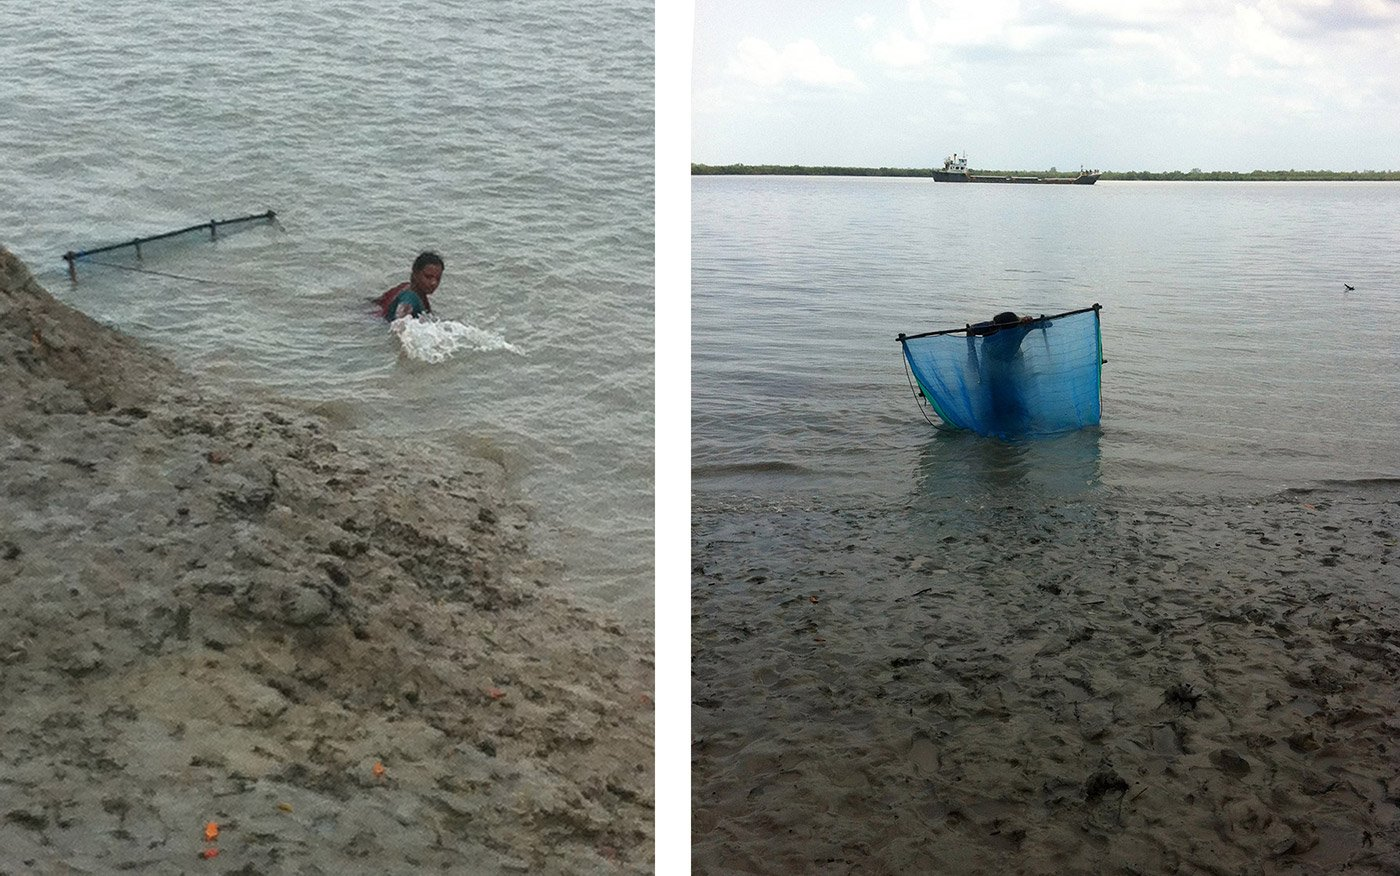 Left: The people who collect tiger prawn seedlings spend close to five hours in the water to get a sufficient catch. Right: A woman drags her net into the river at low tide, which is the best time to gather the seedlings